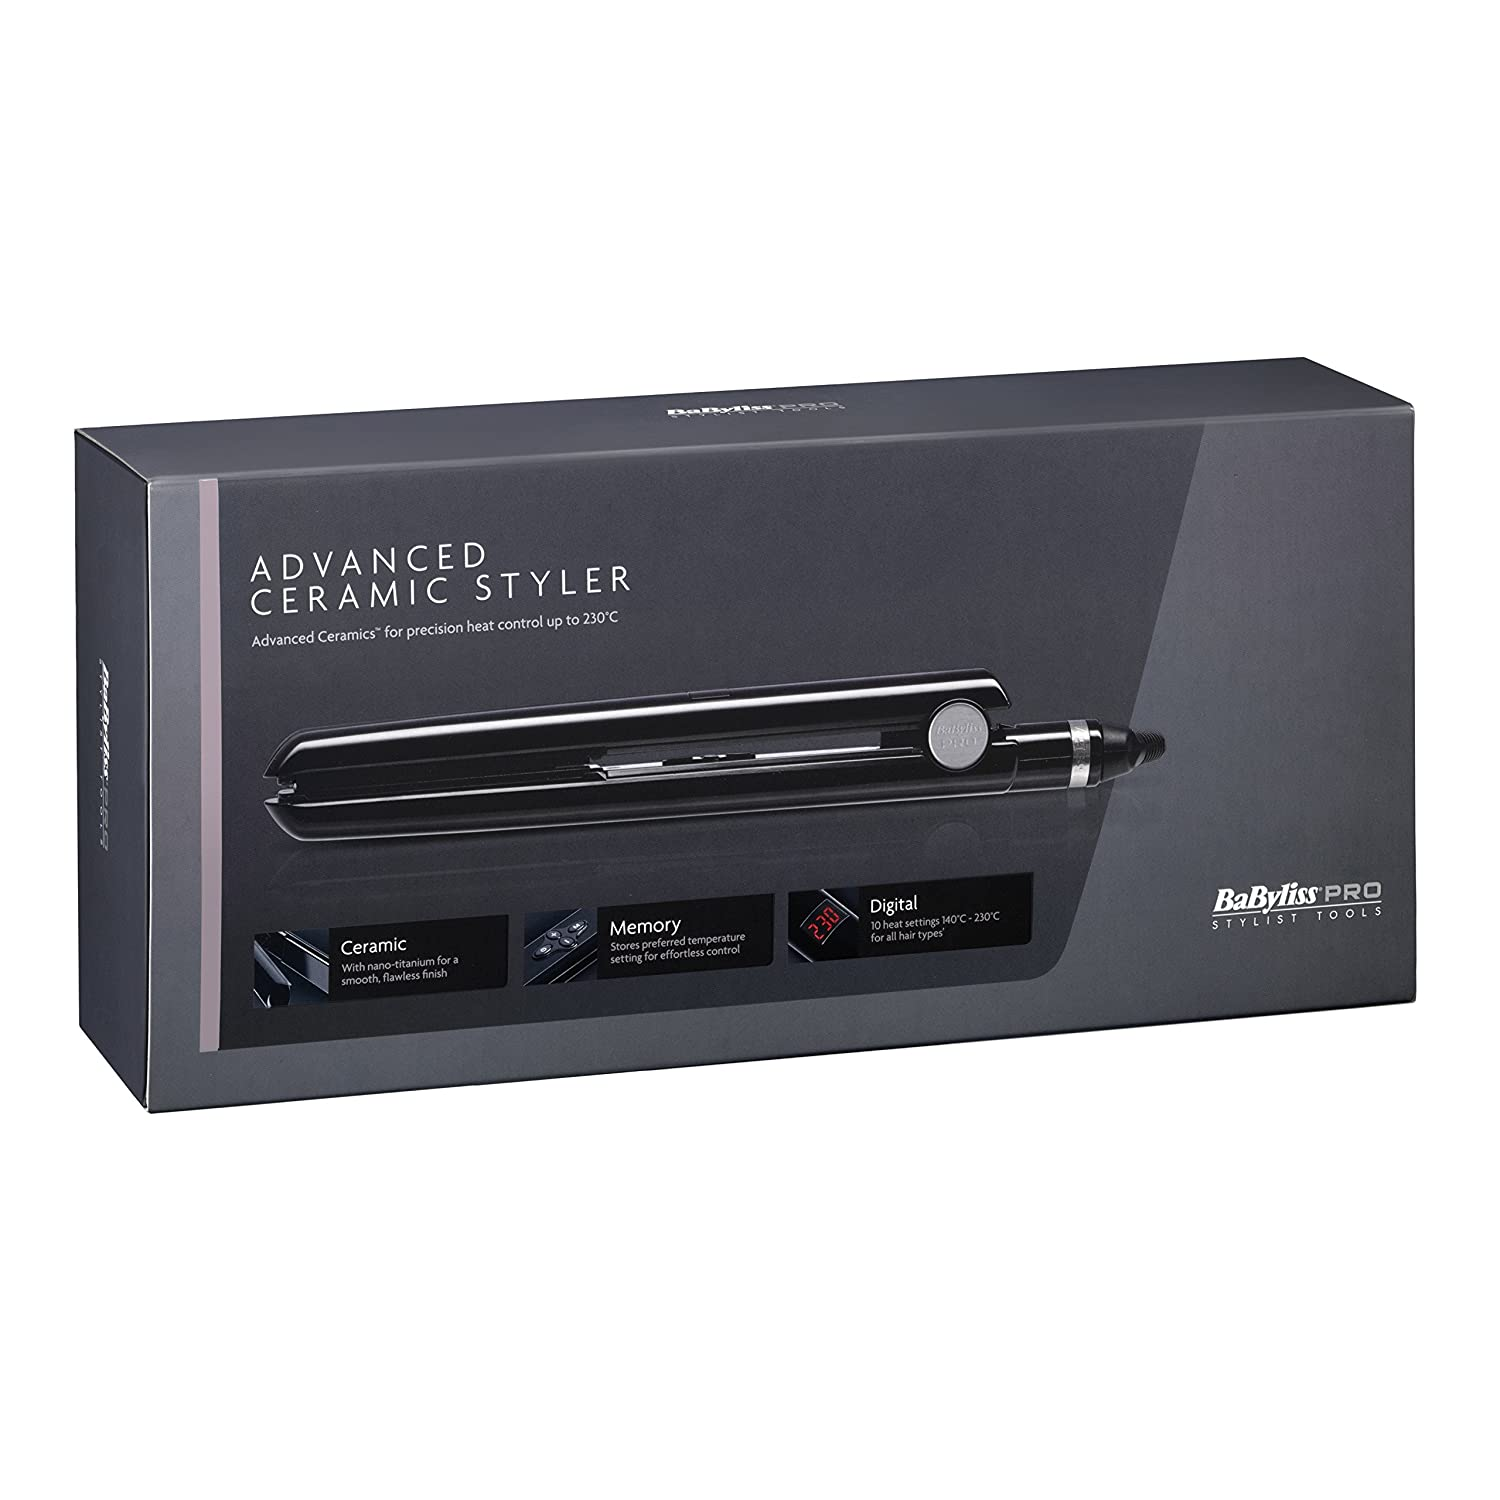 BaByliss Pro - Advanced Ceramic Styler Hair Straightener - Black